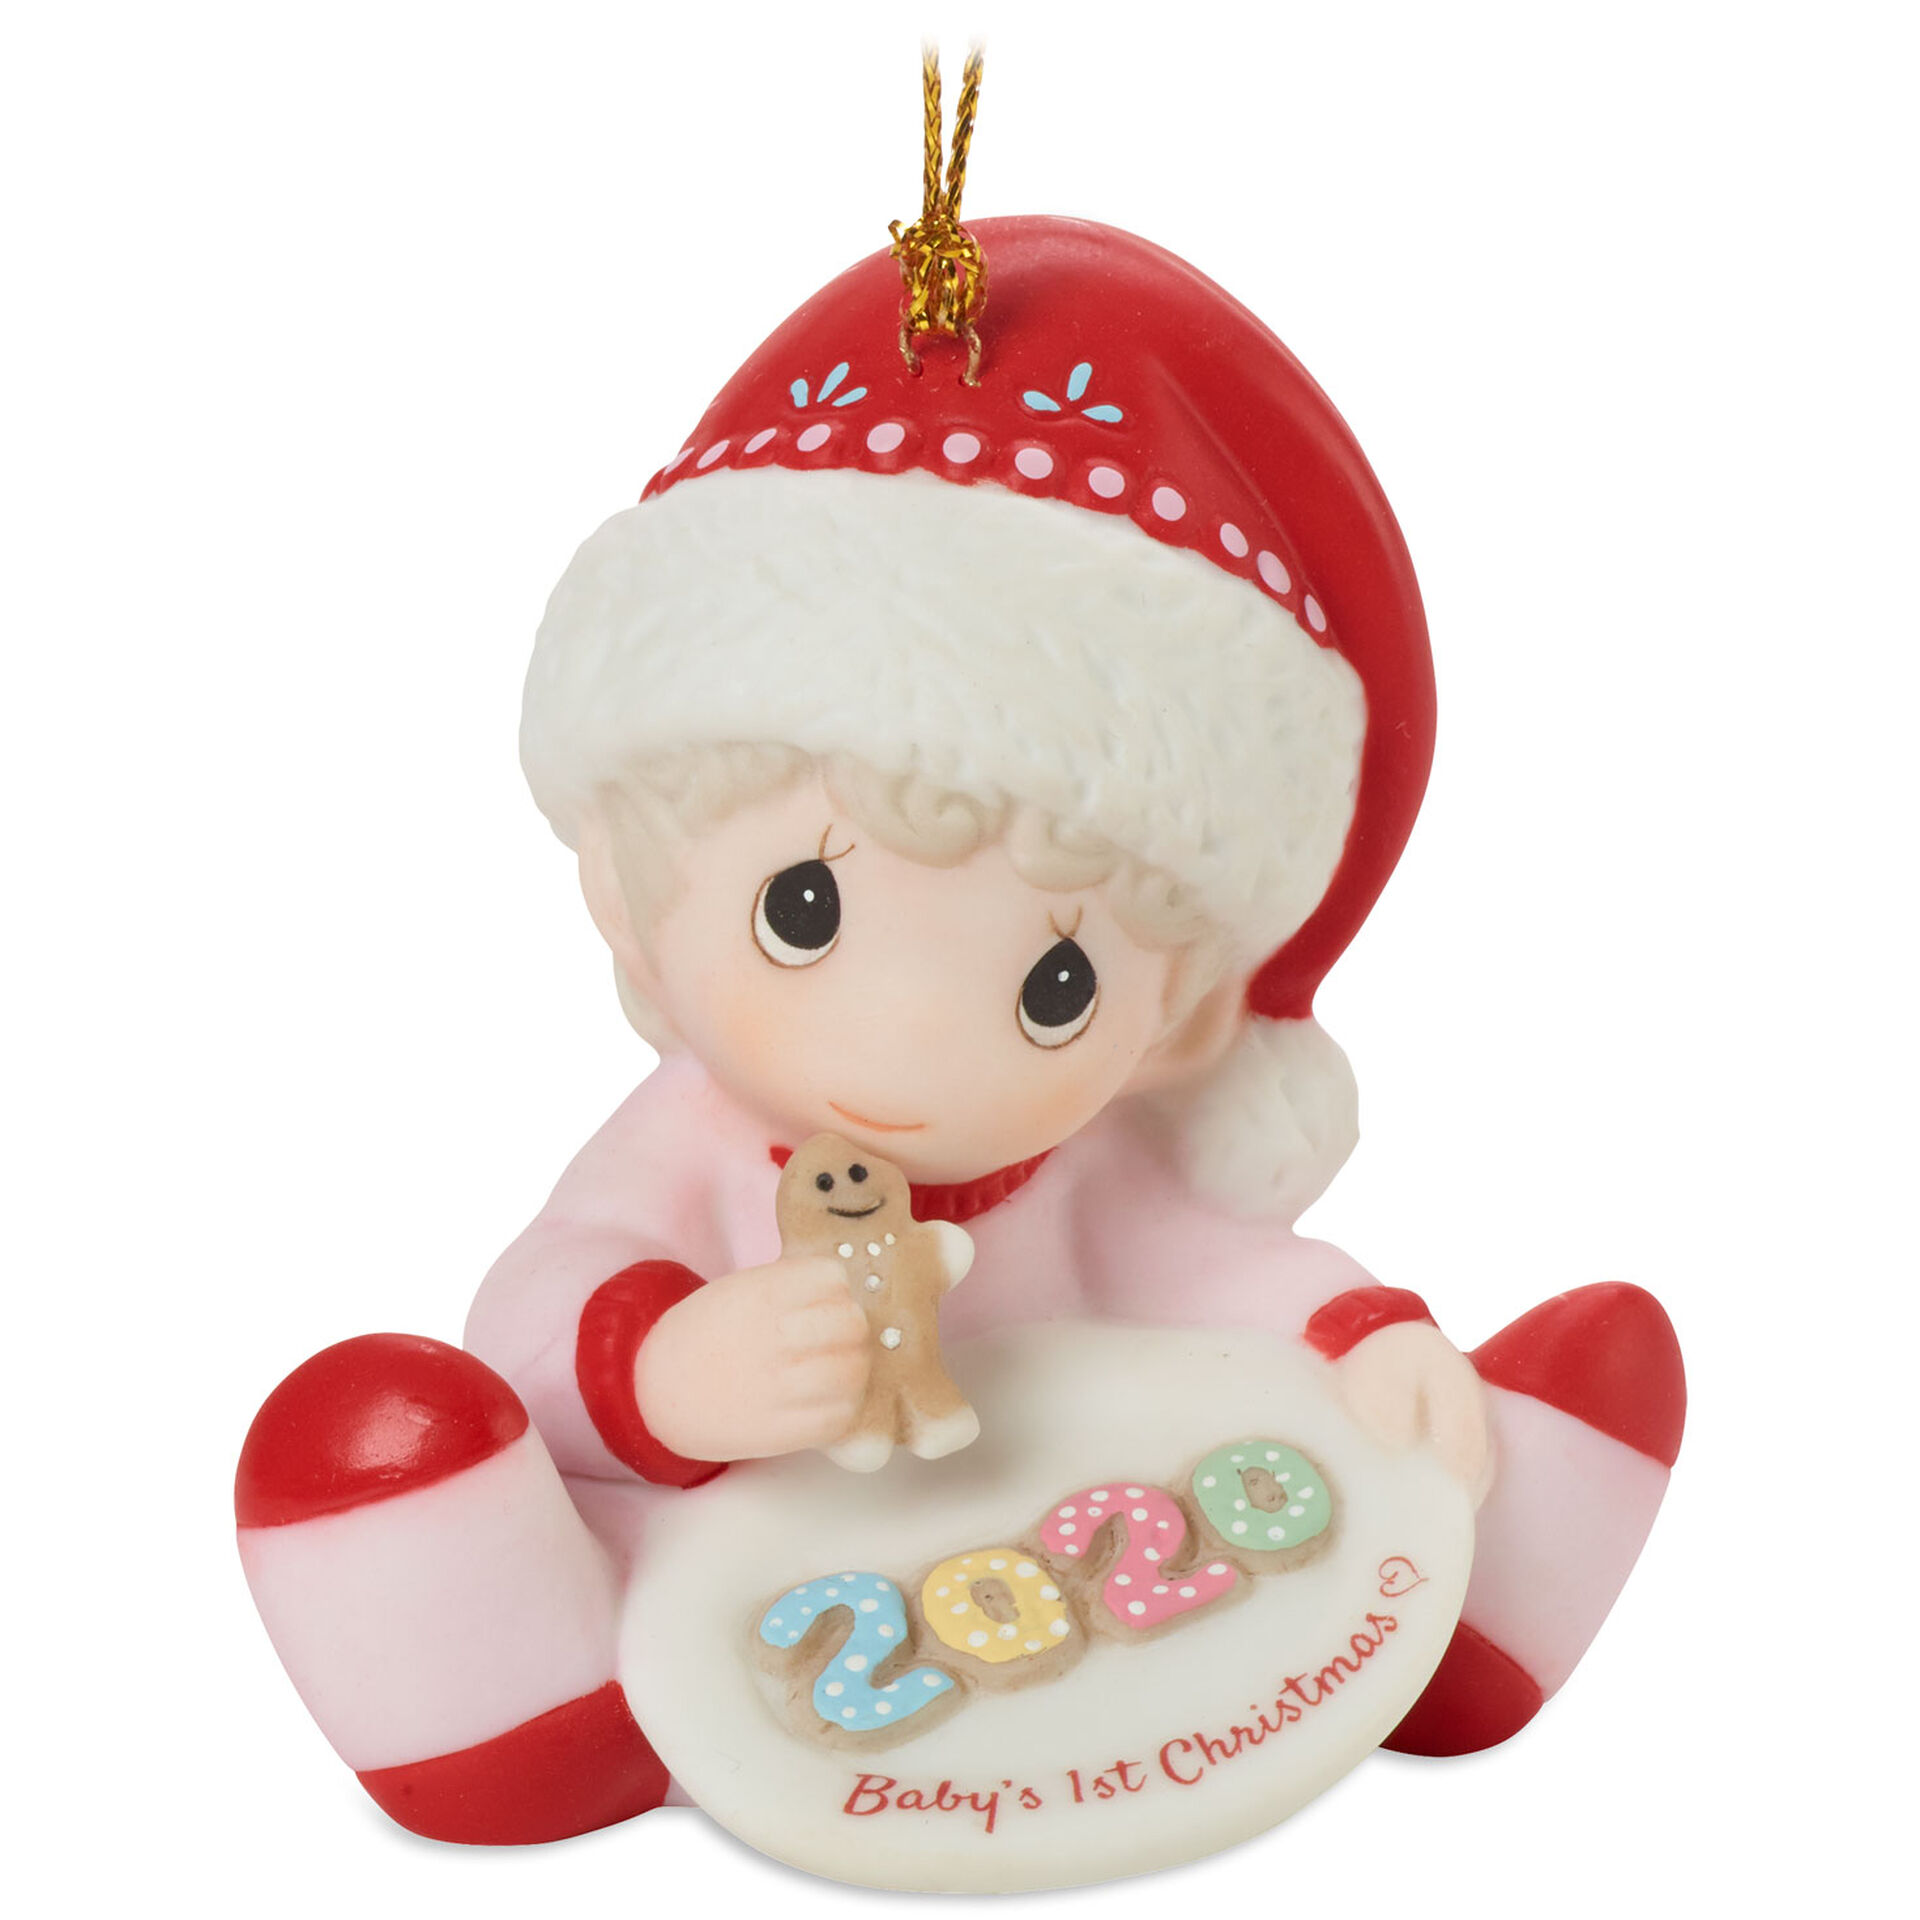 Precious Moments Baby's First Christmas 2020 Girl Ornament, 2.75